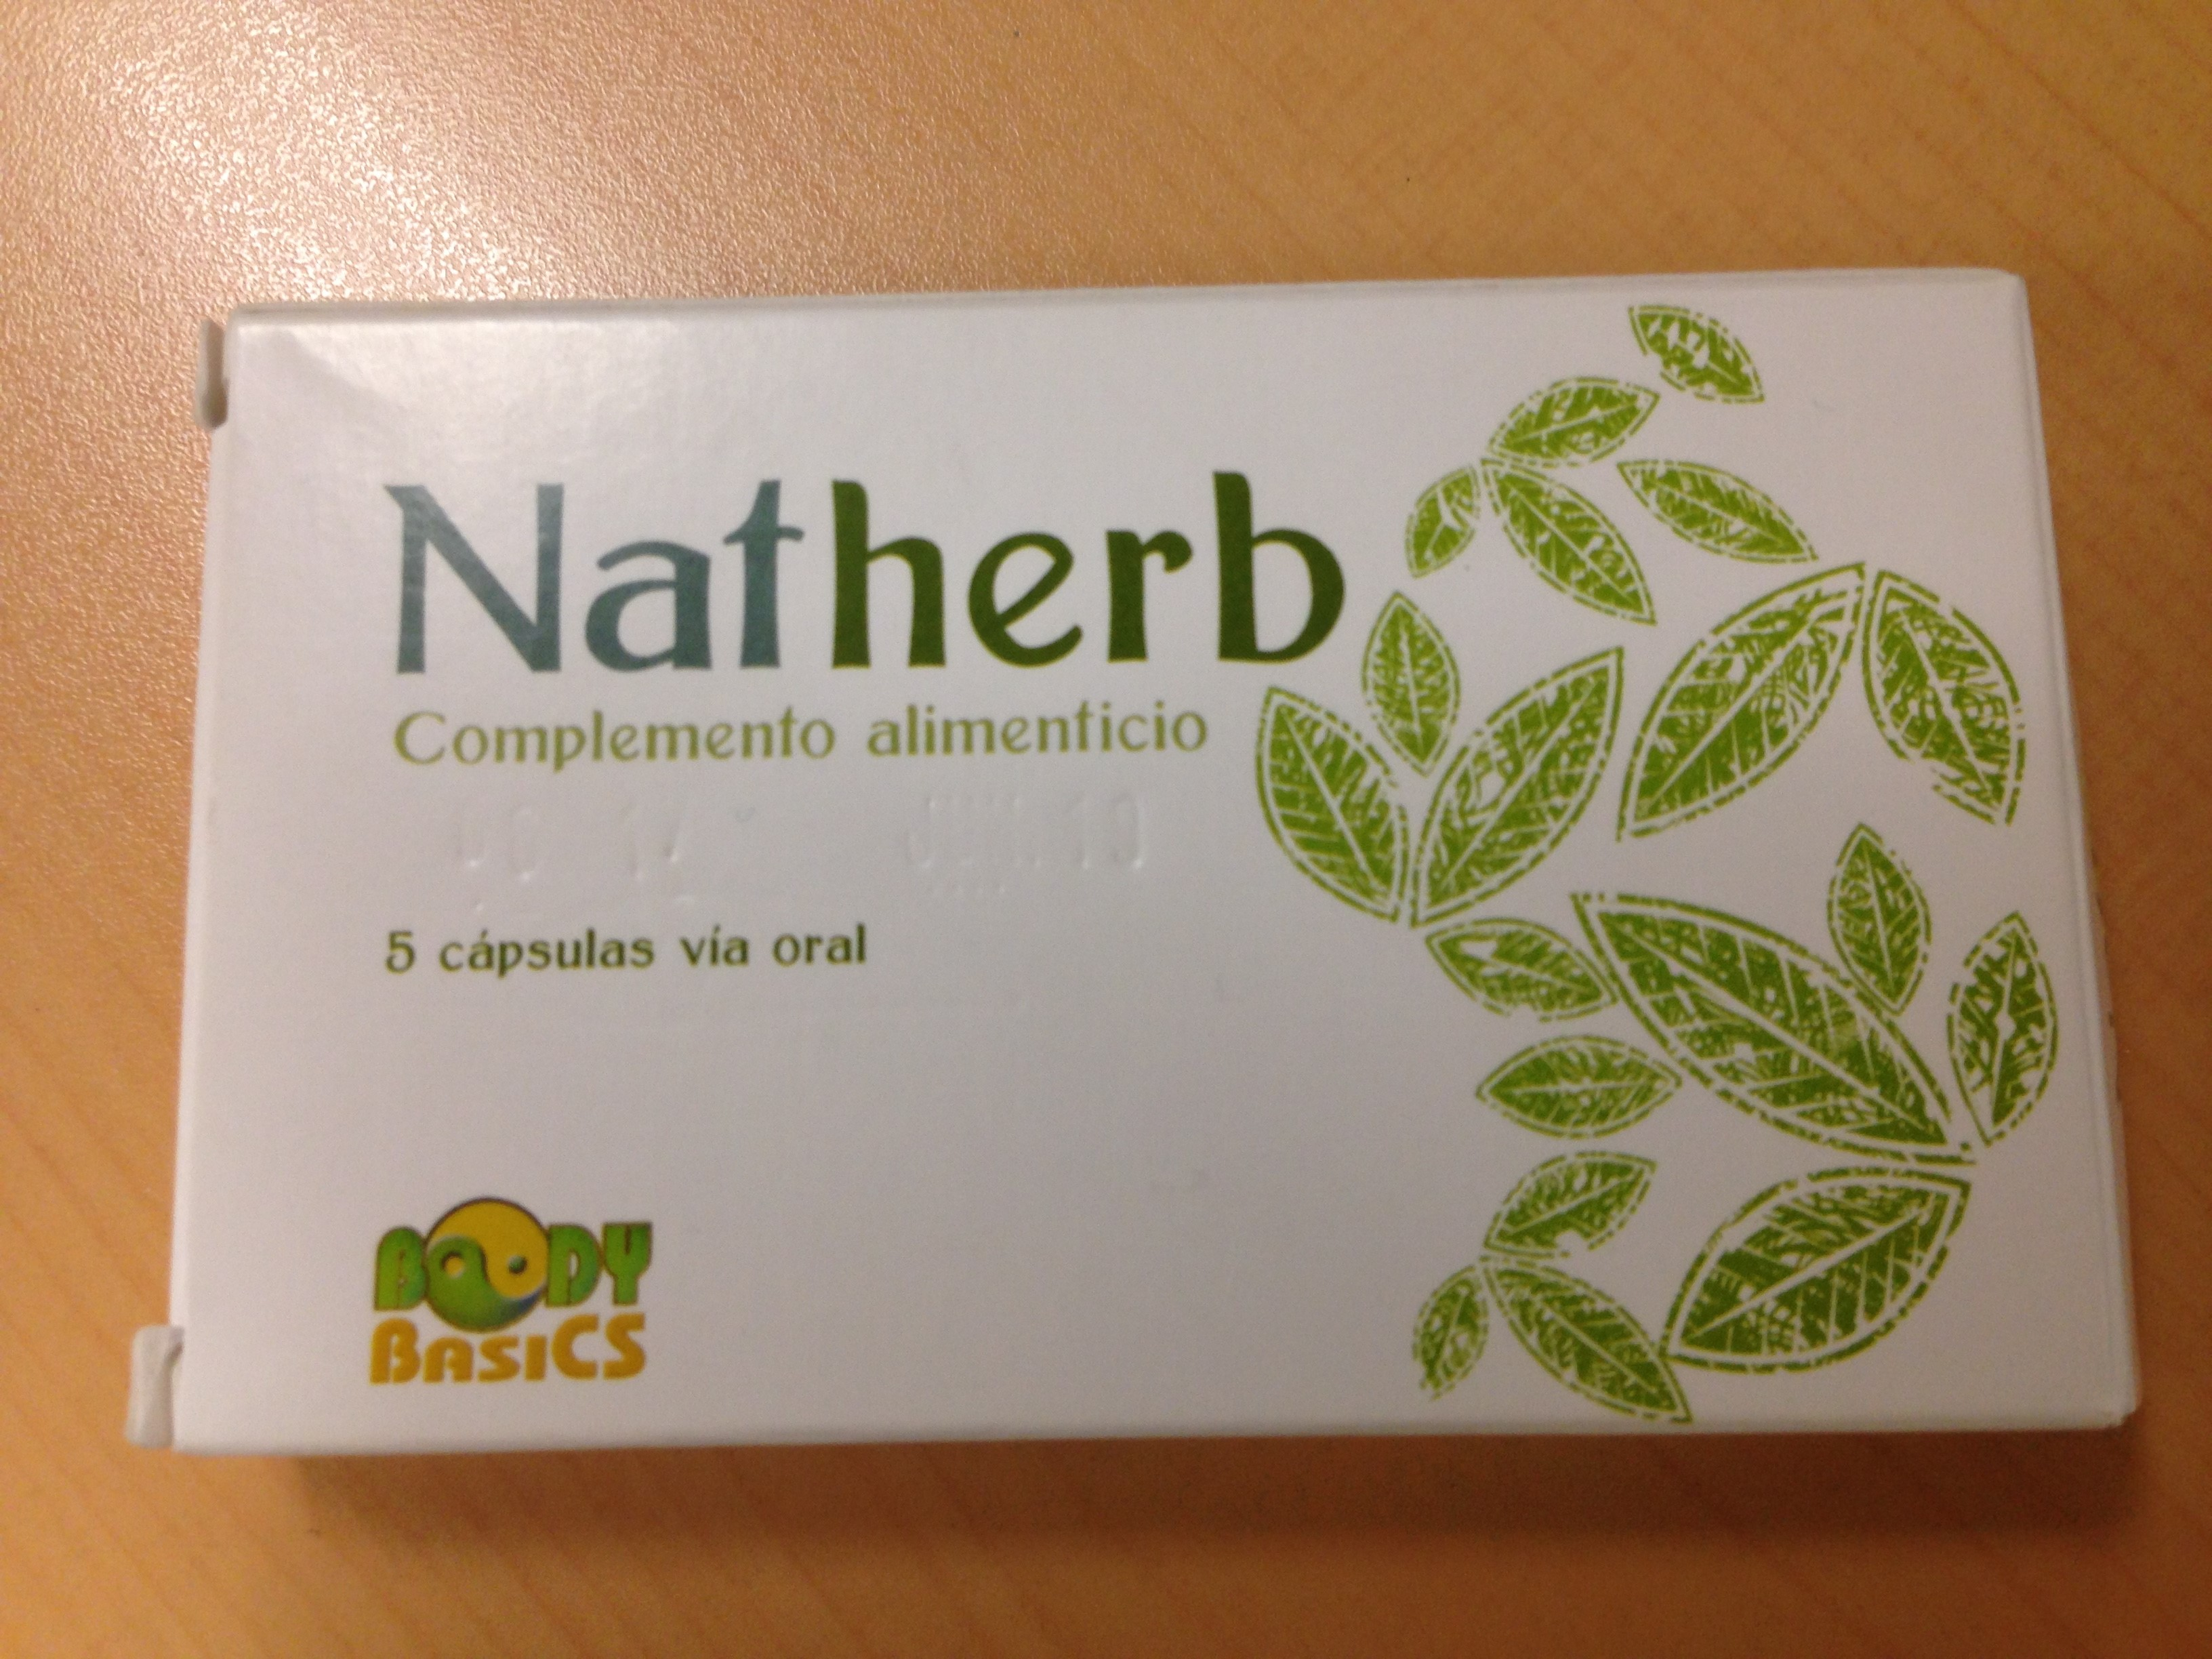 Image of the illigal product: Natherb